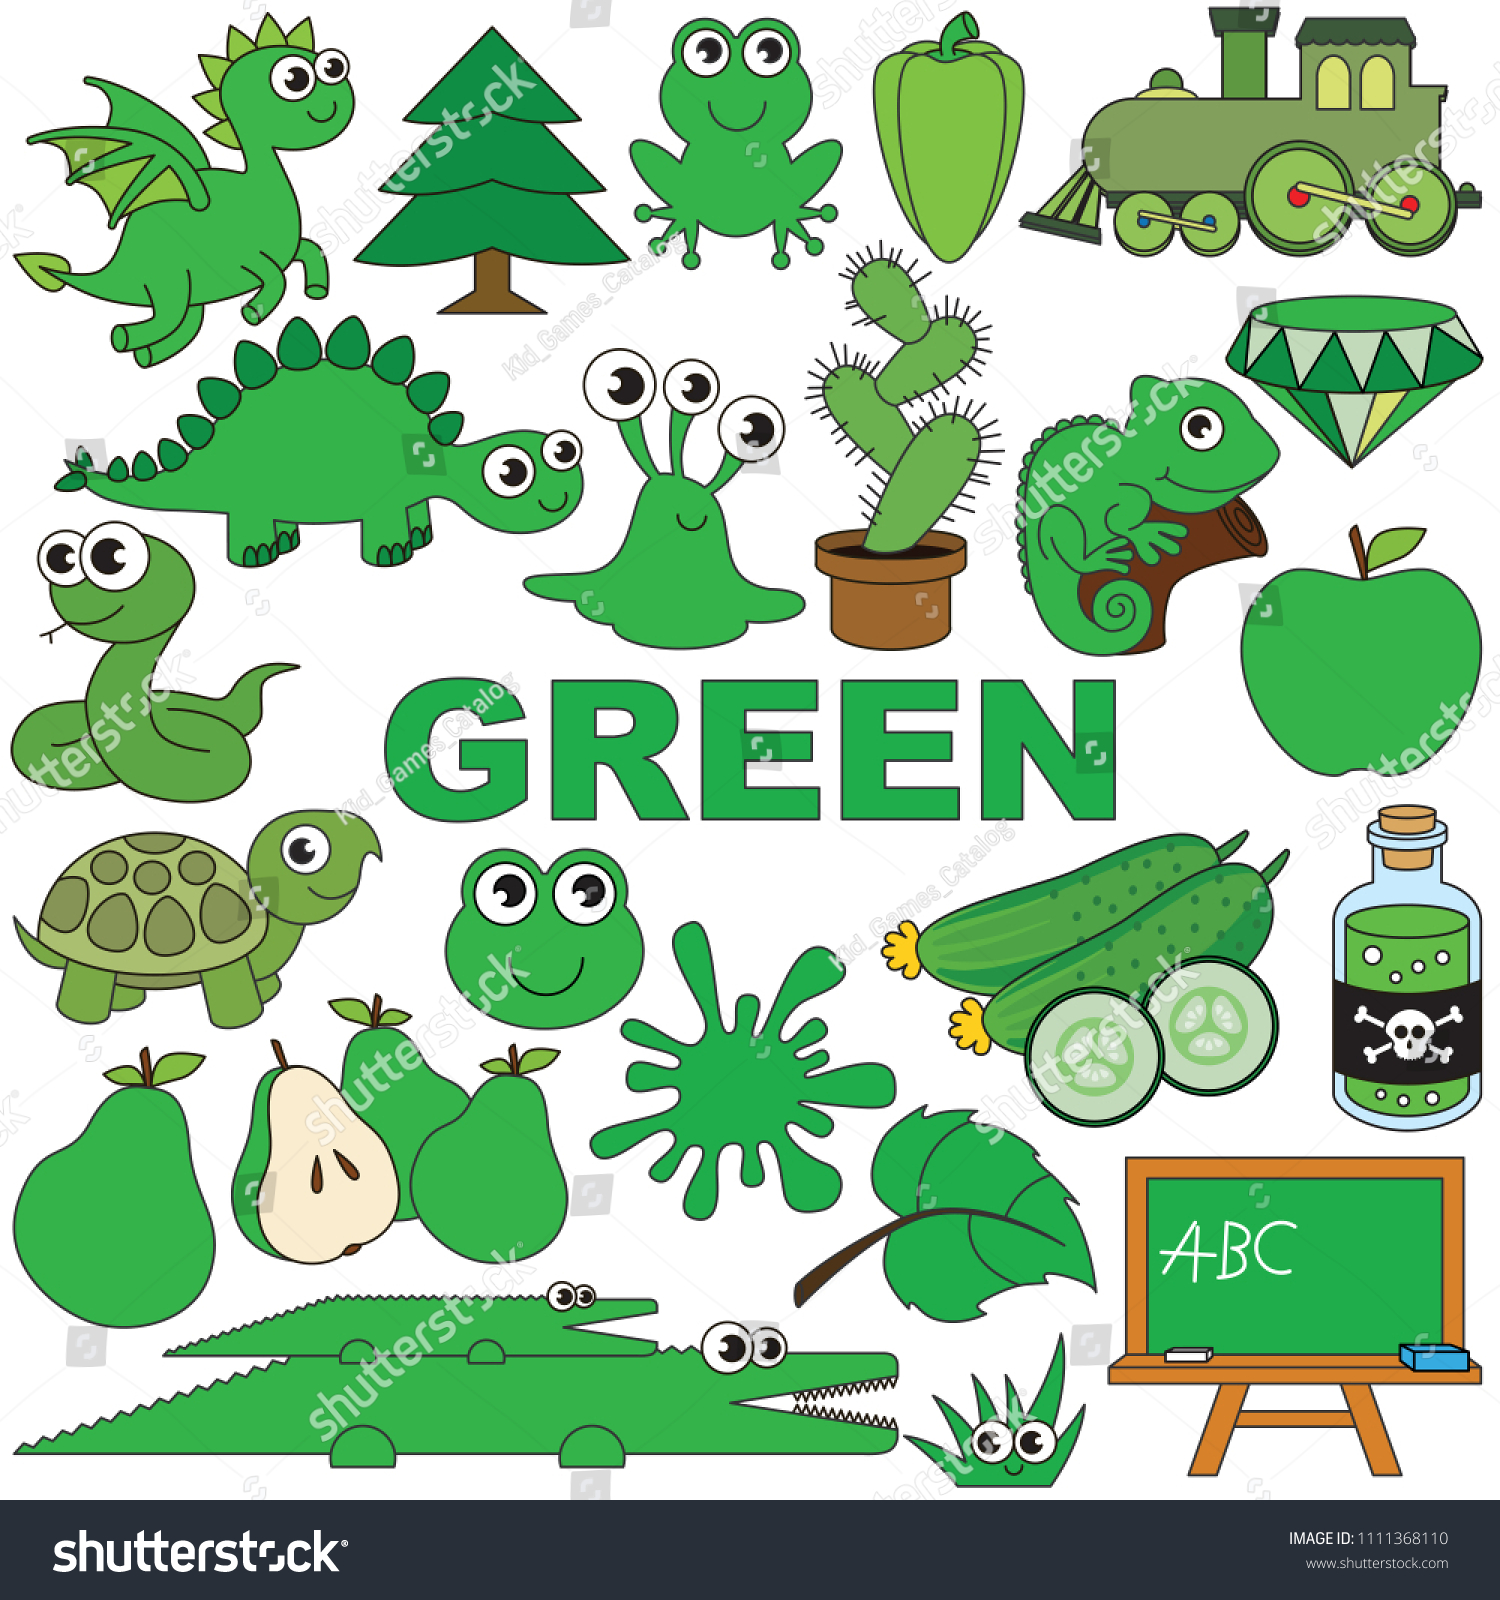 Green Objects Color Elements Set Collection Stock Vector (Royalty ...